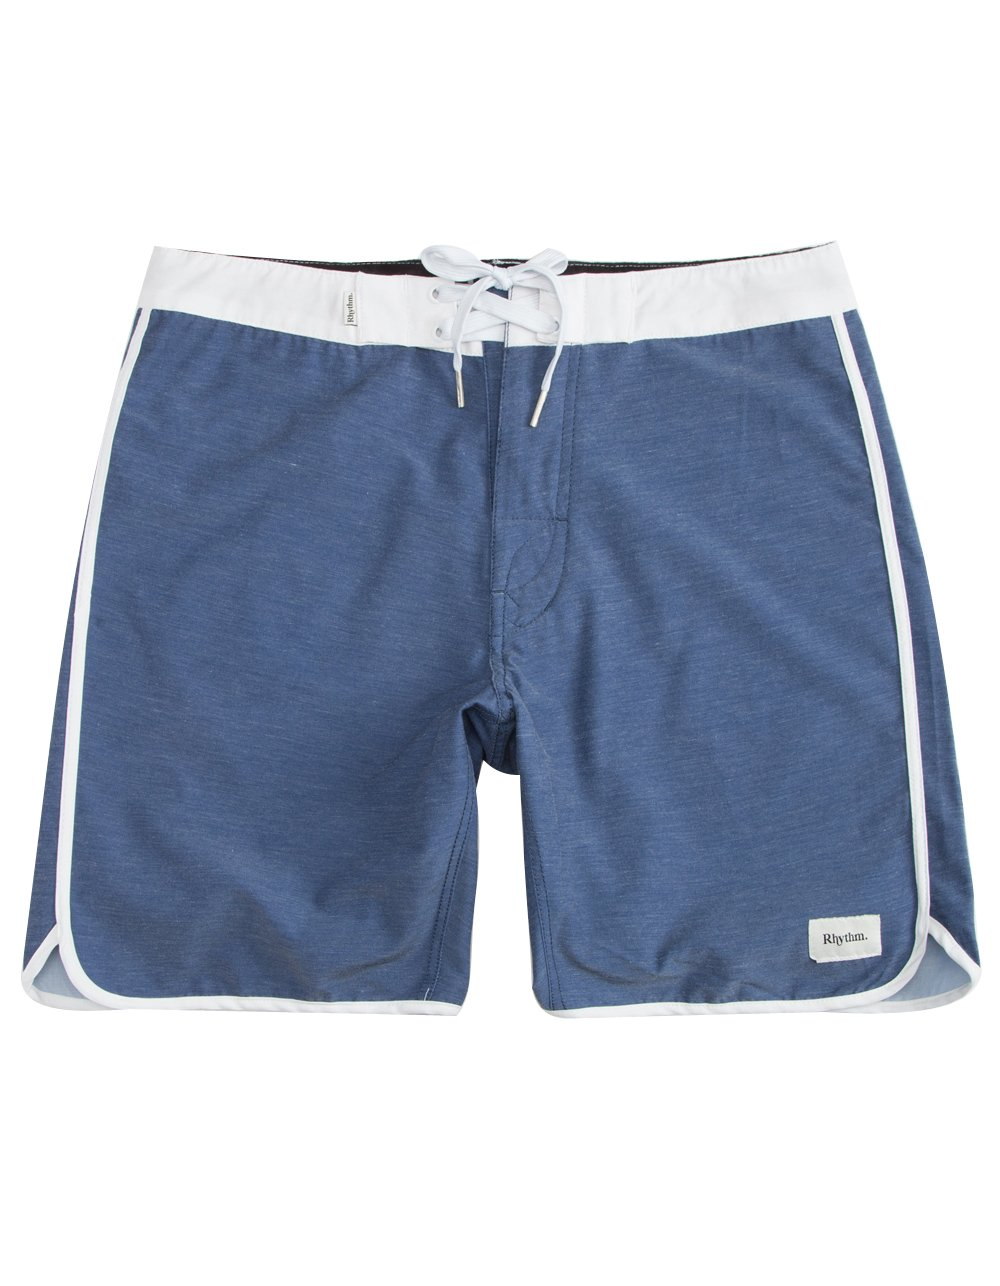 RHYTHM THE SURF TRUNK Boardshort 2017 navy